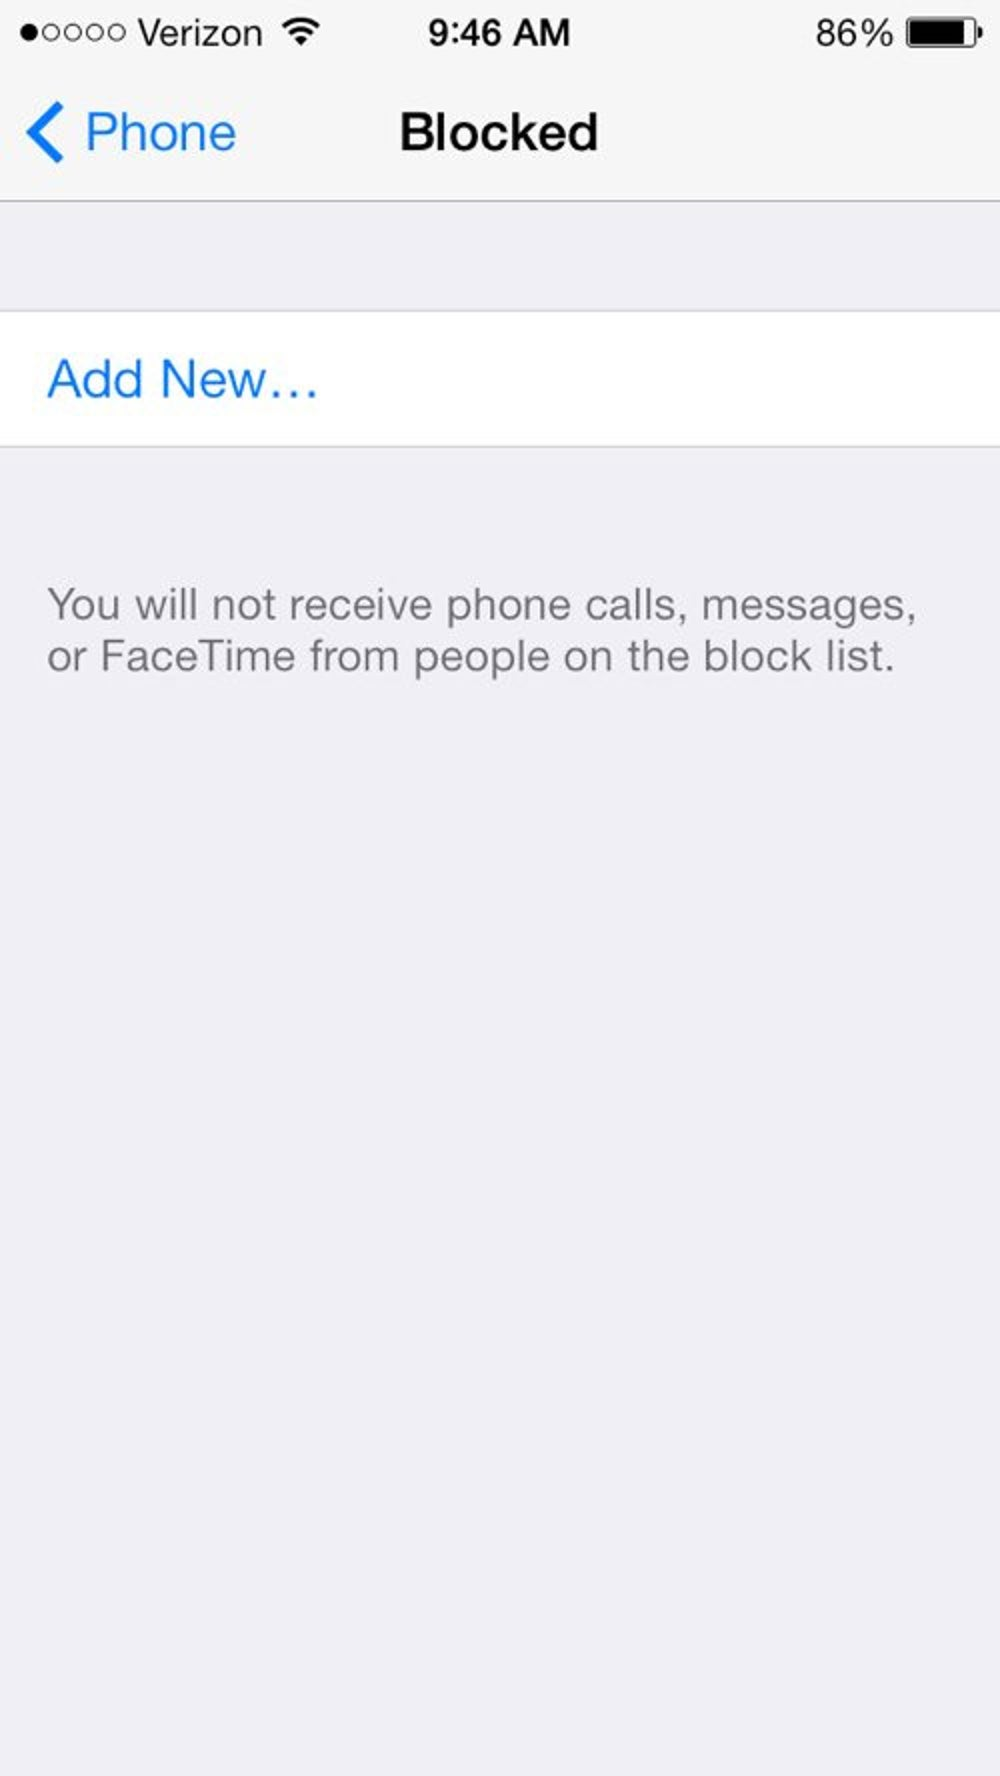 You can block certain phone numbers from calling or texting you. Go to Settings > Phone > Blocked to add numbers or people already in your contacts to your blocked list.